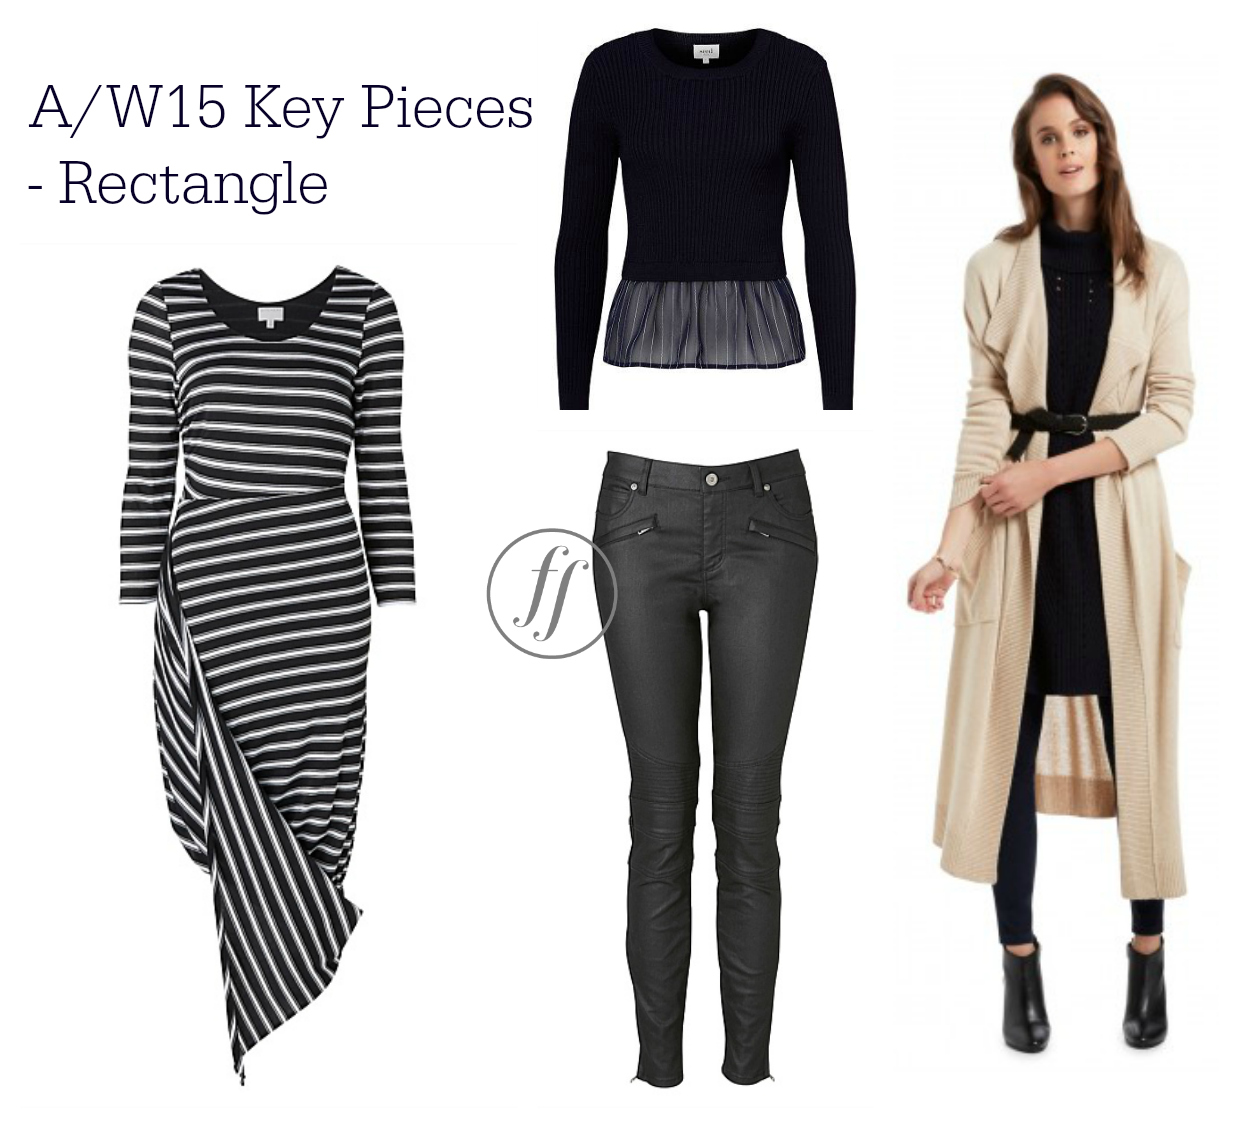 Fashion for rectangle body shape 51